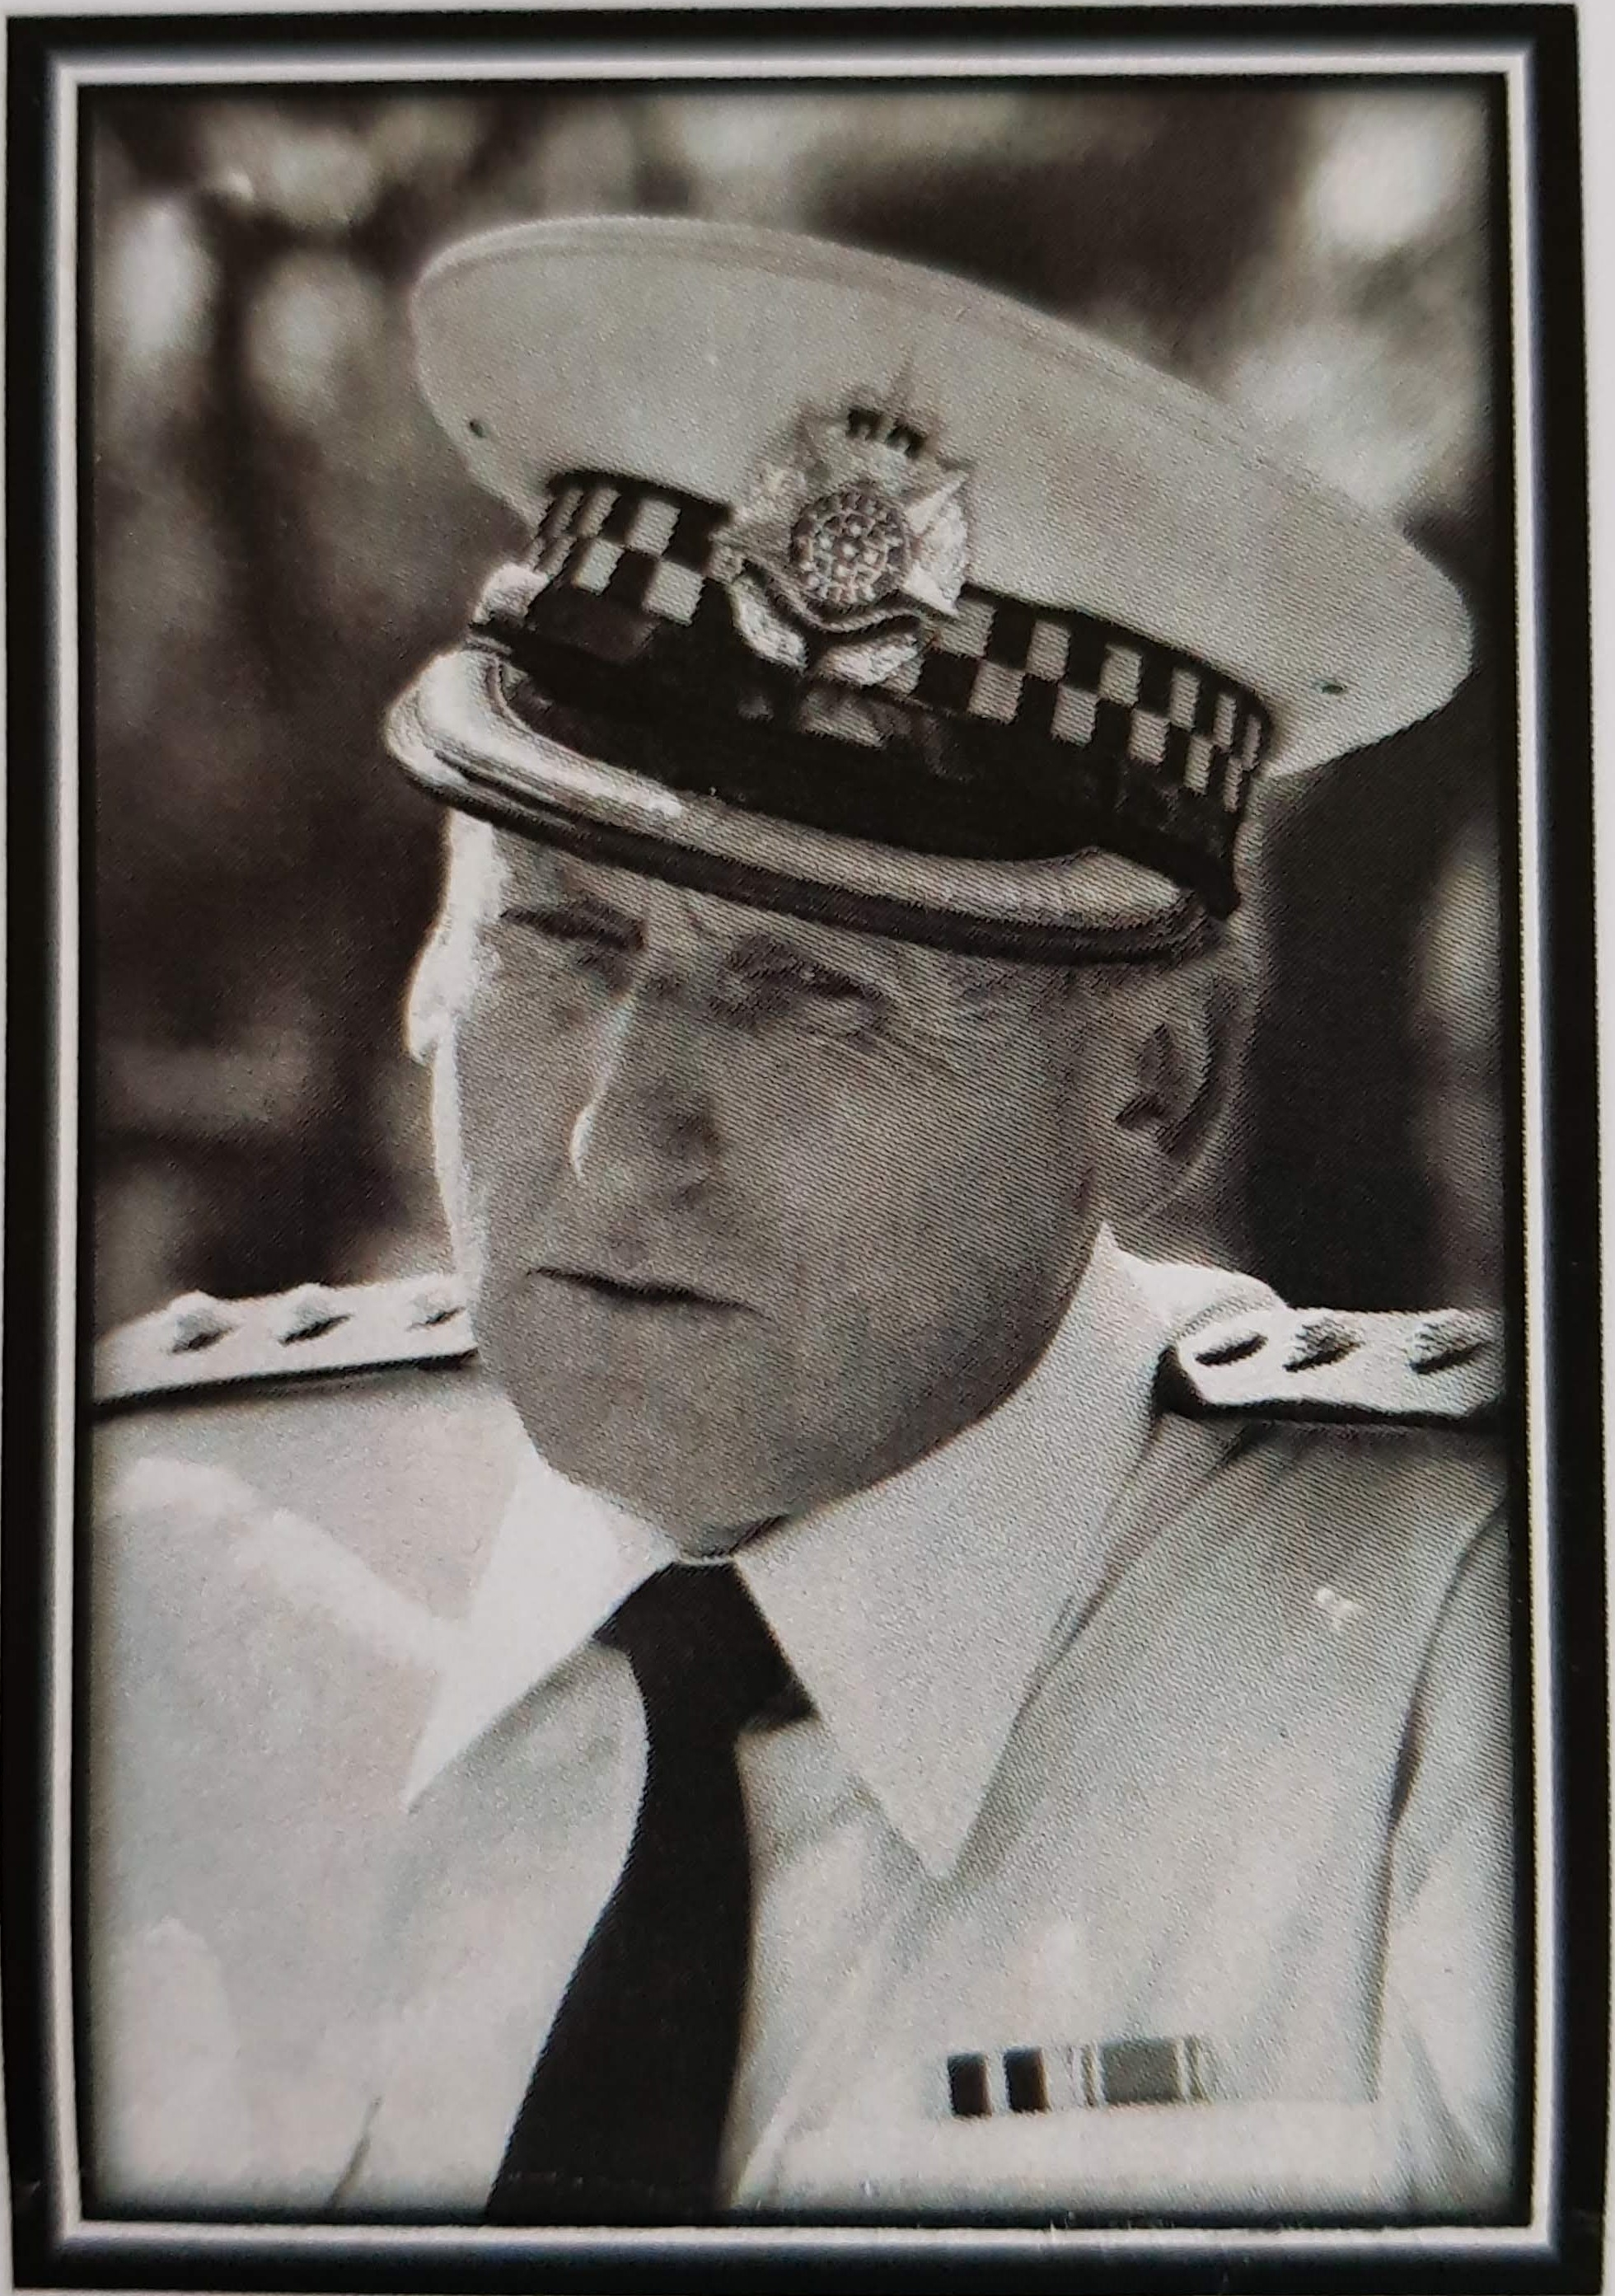 Bill Brand in uniform